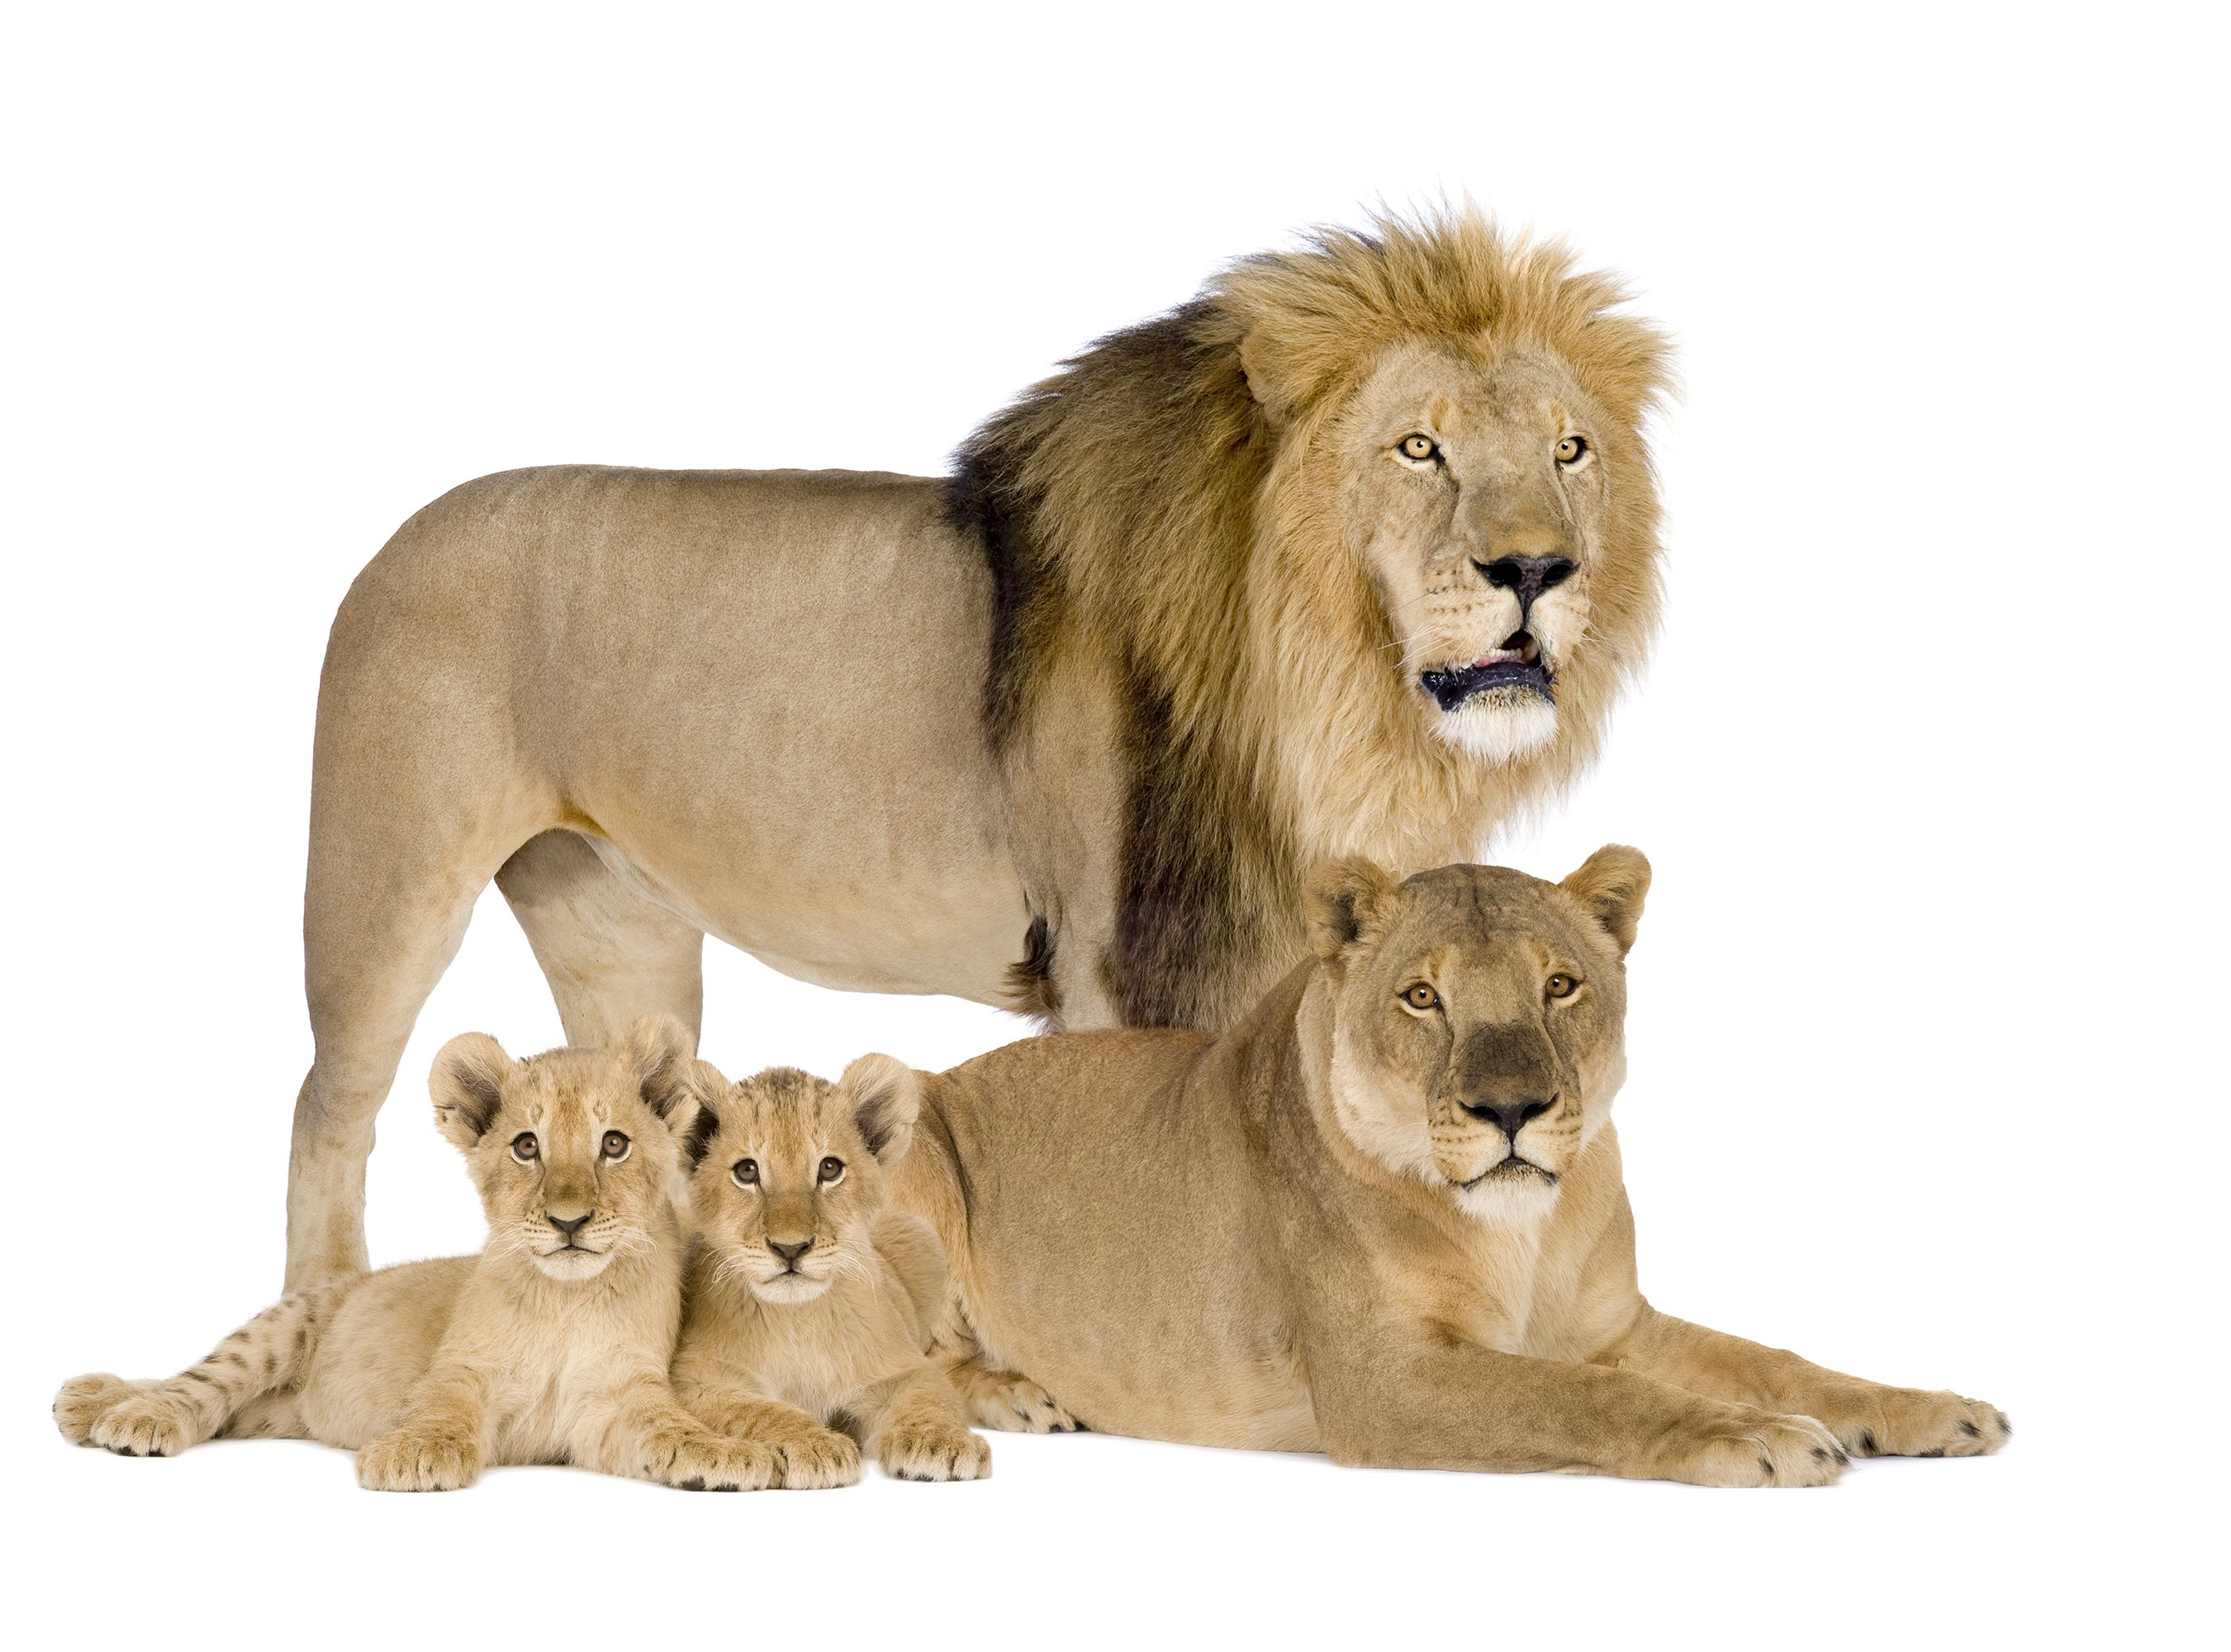 Lions are called the kings of the animal kingdom and one good